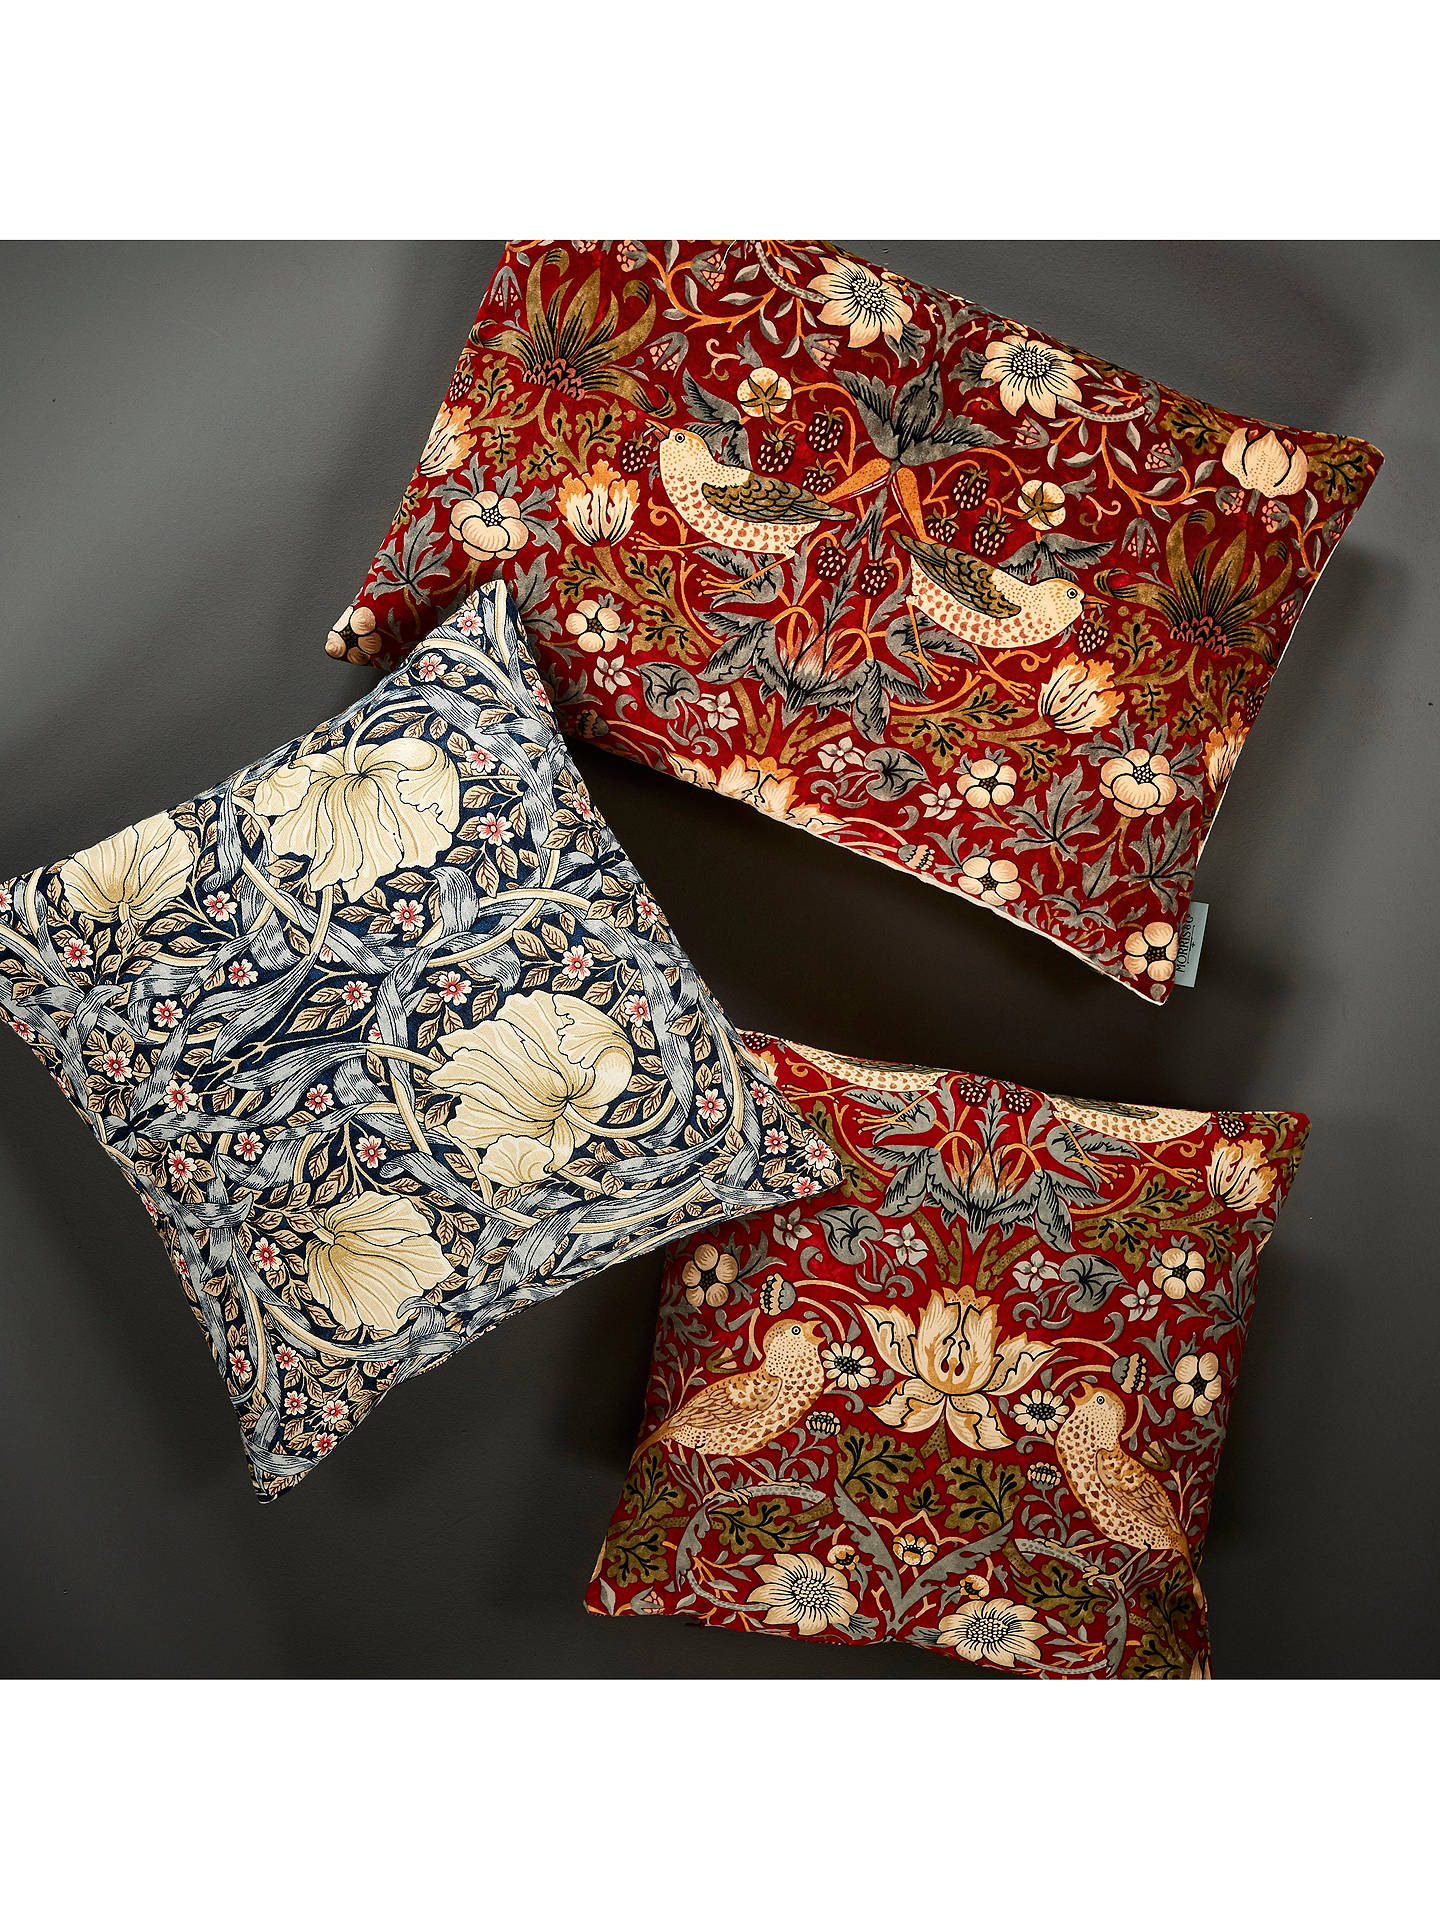 Buy Morris & Co. Strawberry Thief Velvet Cushion, Red Online at johnlewis.com